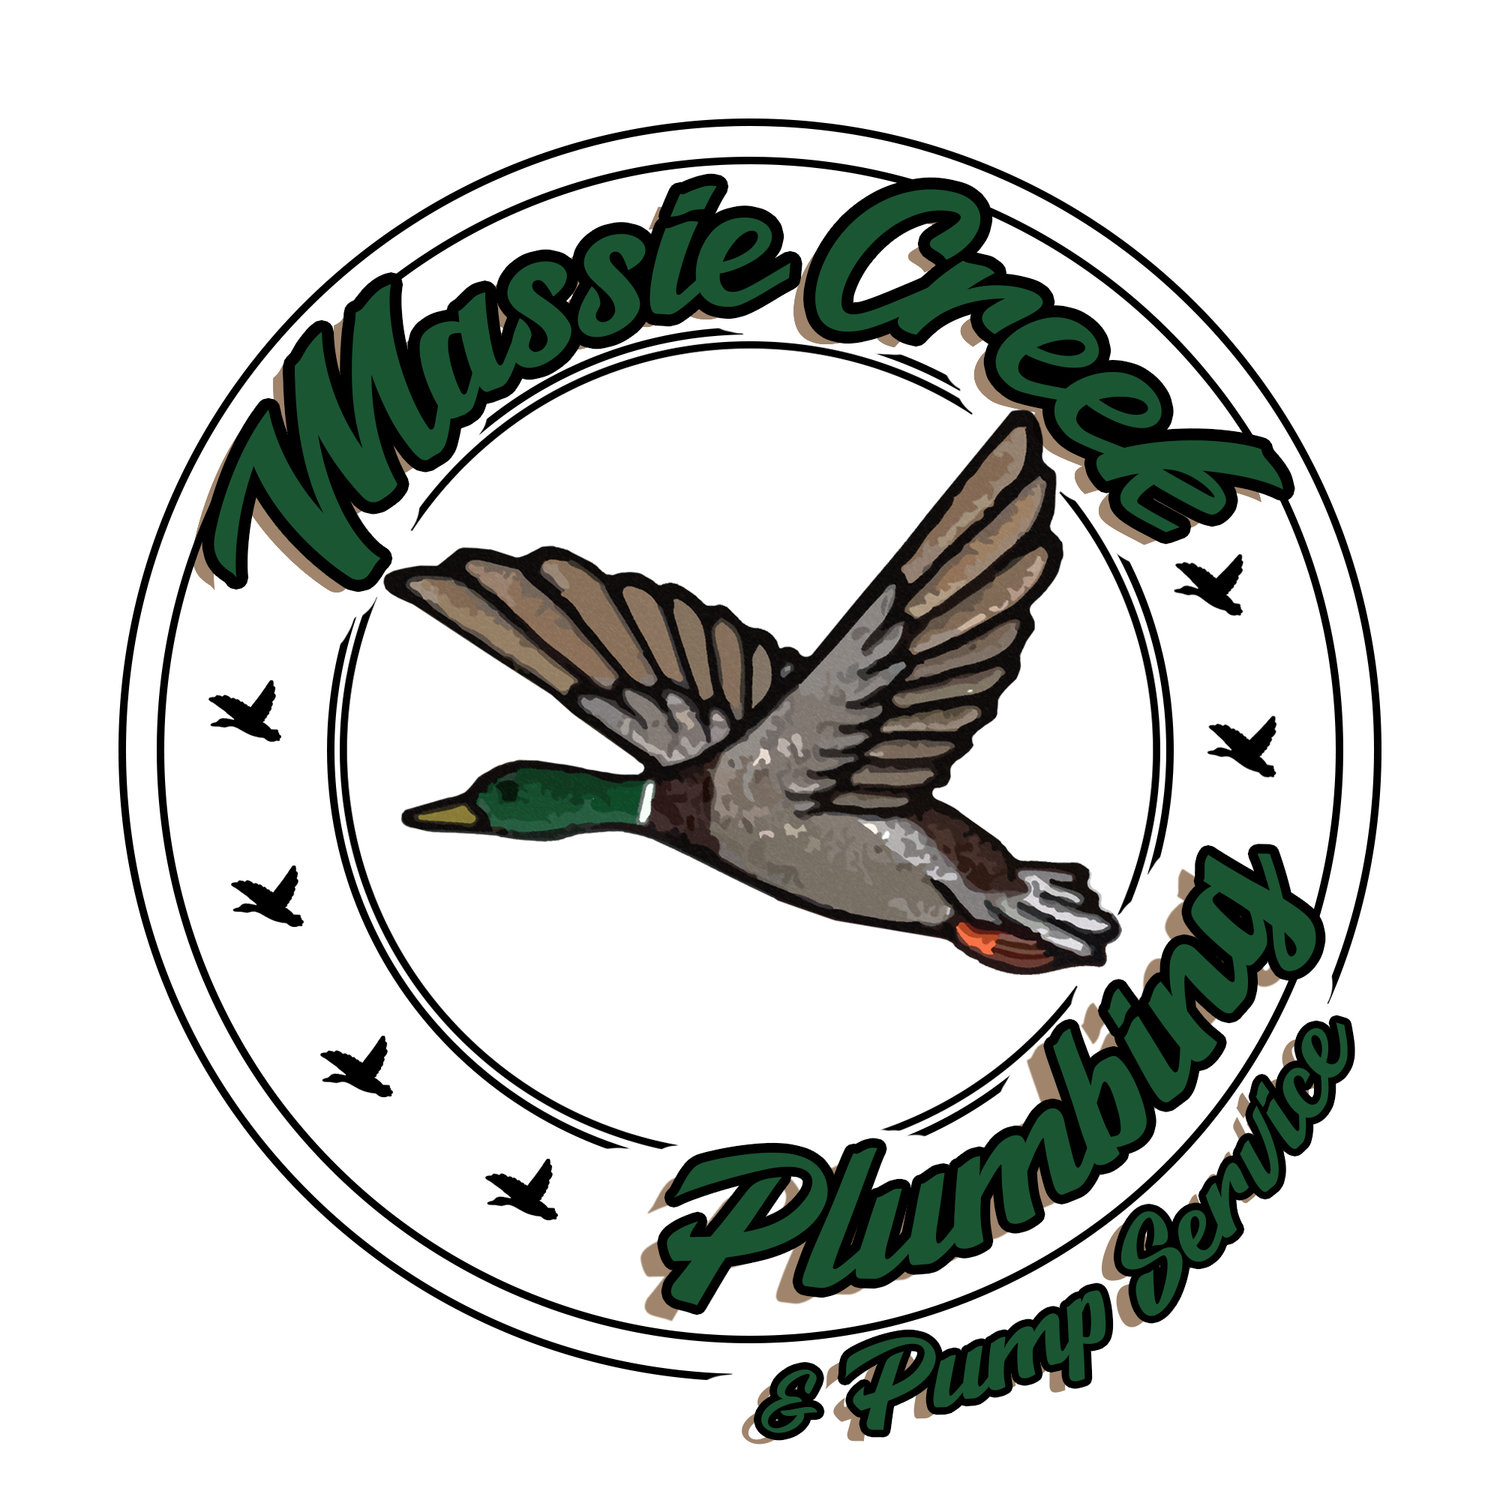 Massie Creek Plumbing